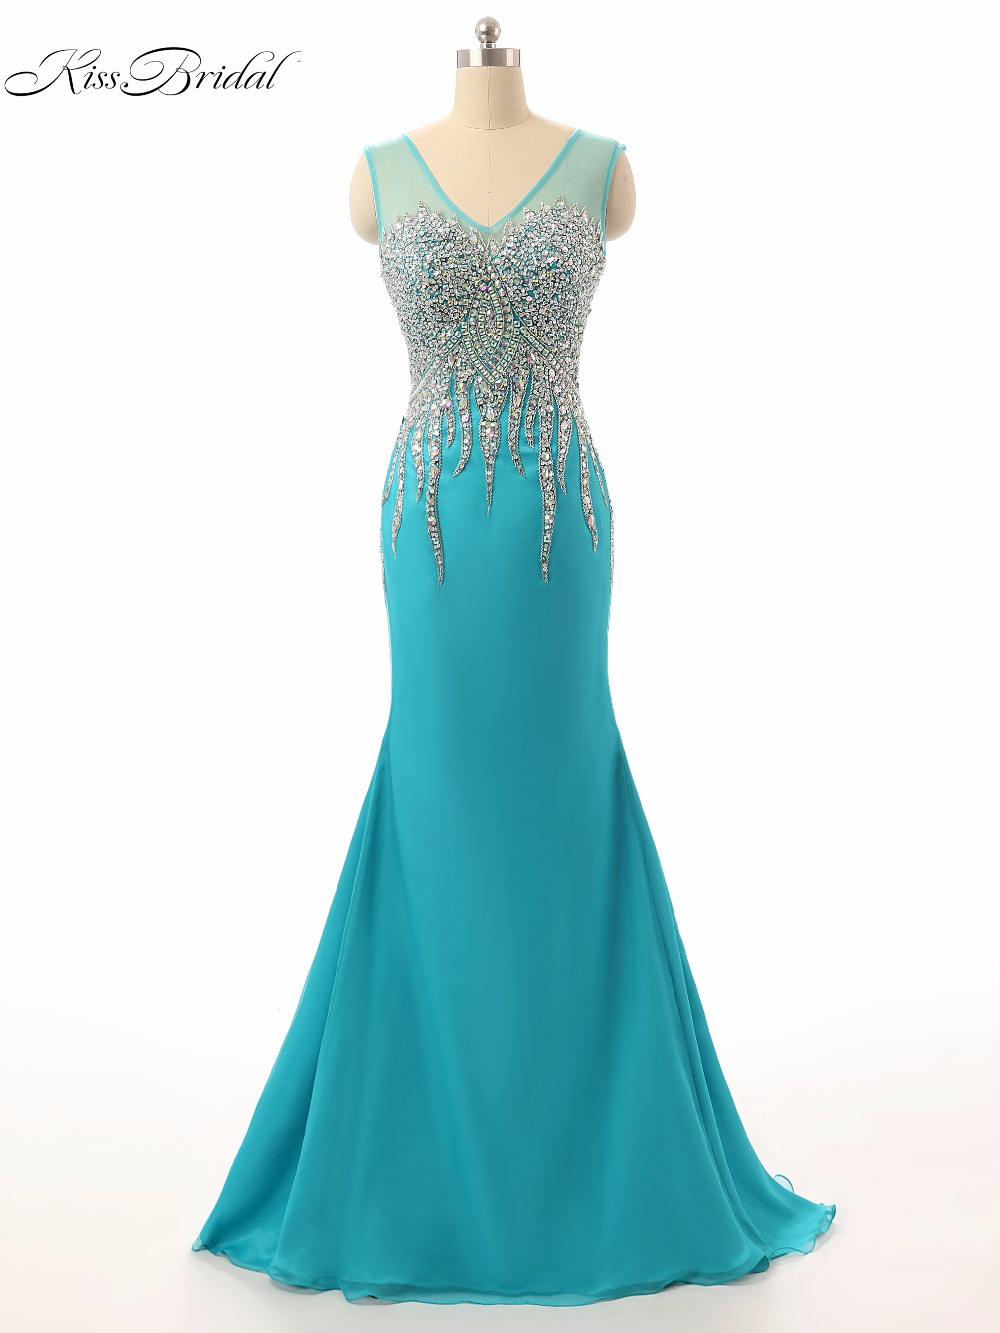 Elegant Long Prom Dresses 2017 V-Neck Sleeveless Backless Beaded Crystal Formal Evening Party Special Occasion Dresses